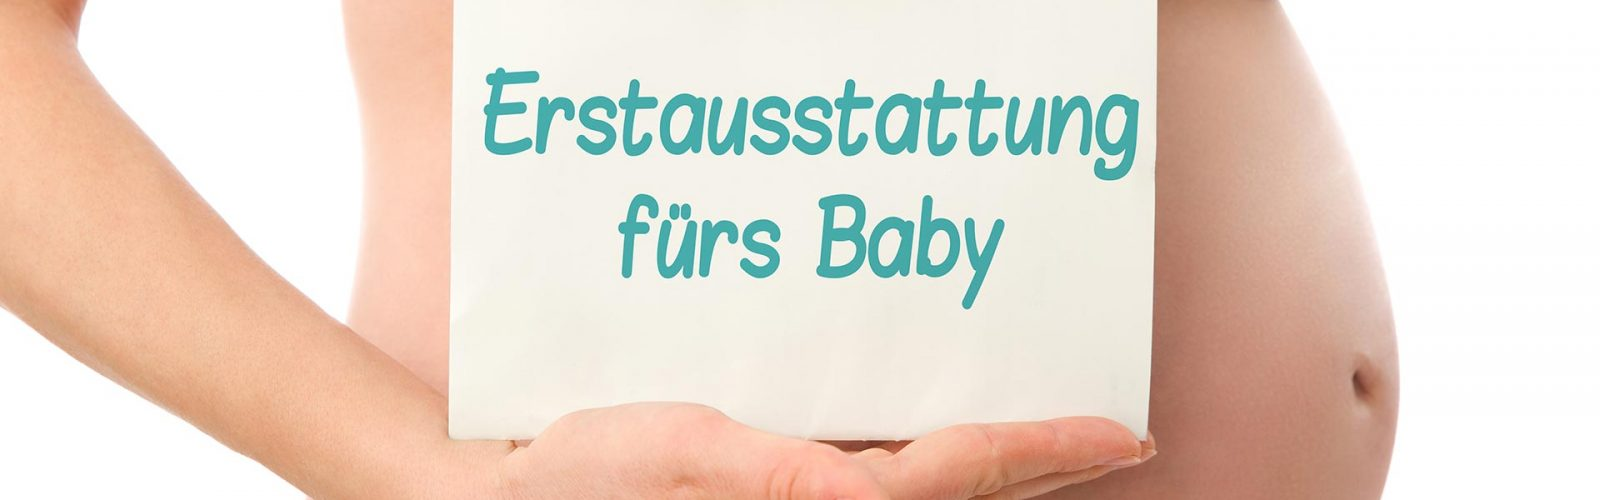 baby erstausstattung checkliste f r werdende eltern babyplaces babyplaces. Black Bedroom Furniture Sets. Home Design Ideas